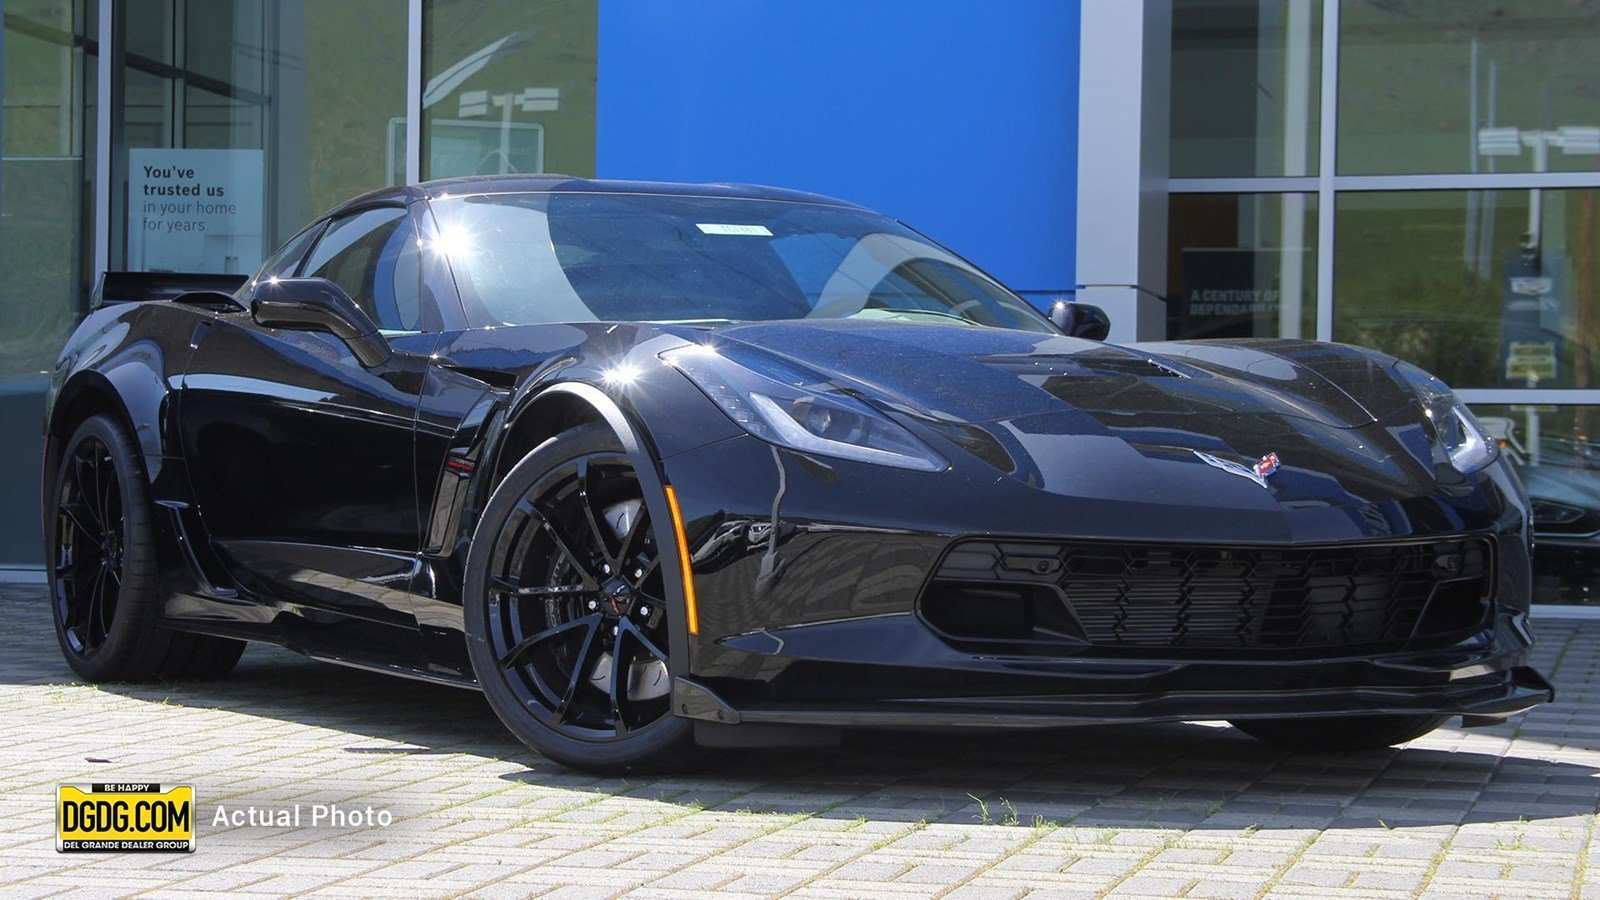 68 Great 2019 Chevrolet Grand Sport Corvette Engine for 2019 Chevrolet Grand Sport Corvette